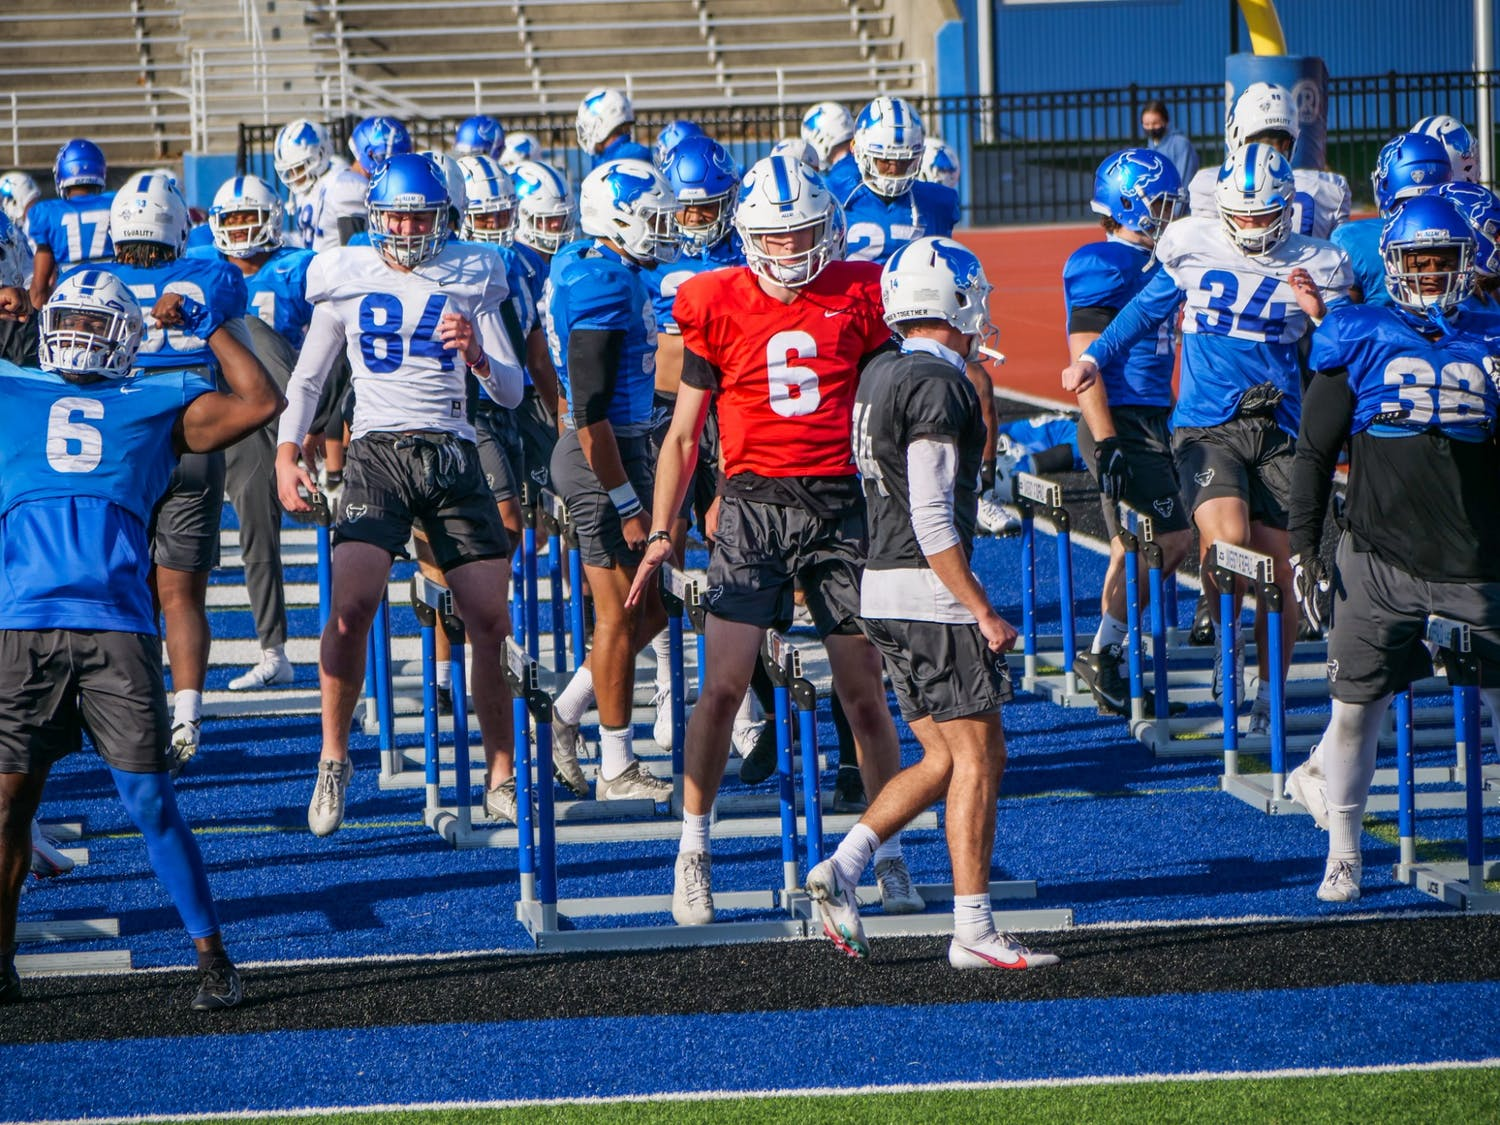 UB football held its first spring practice Monday. Quarterback Casey Case (6) and tight end Jackson Westfall (84) look to make an impact for the Bulls this season.